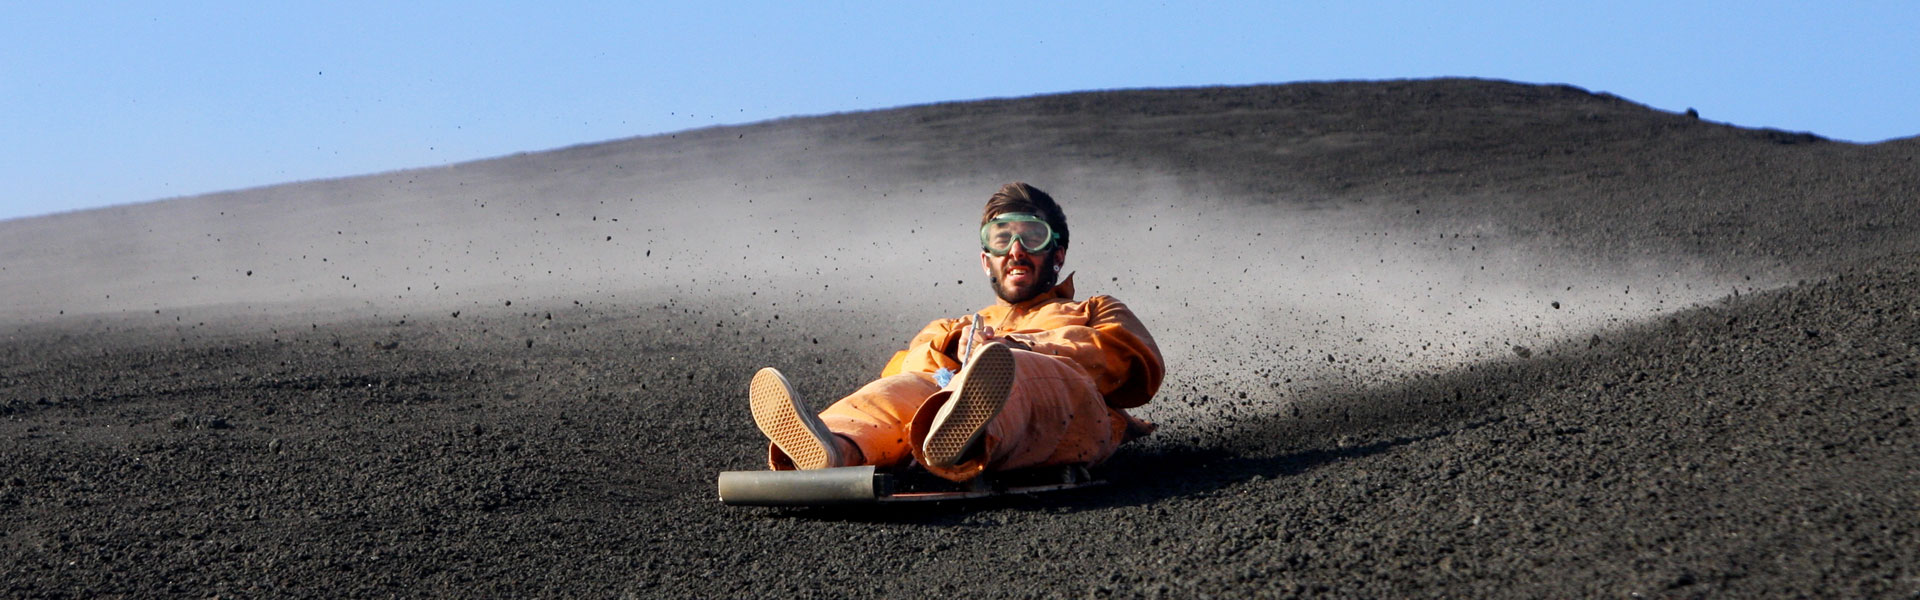 surf-expedition-volcano-boarding